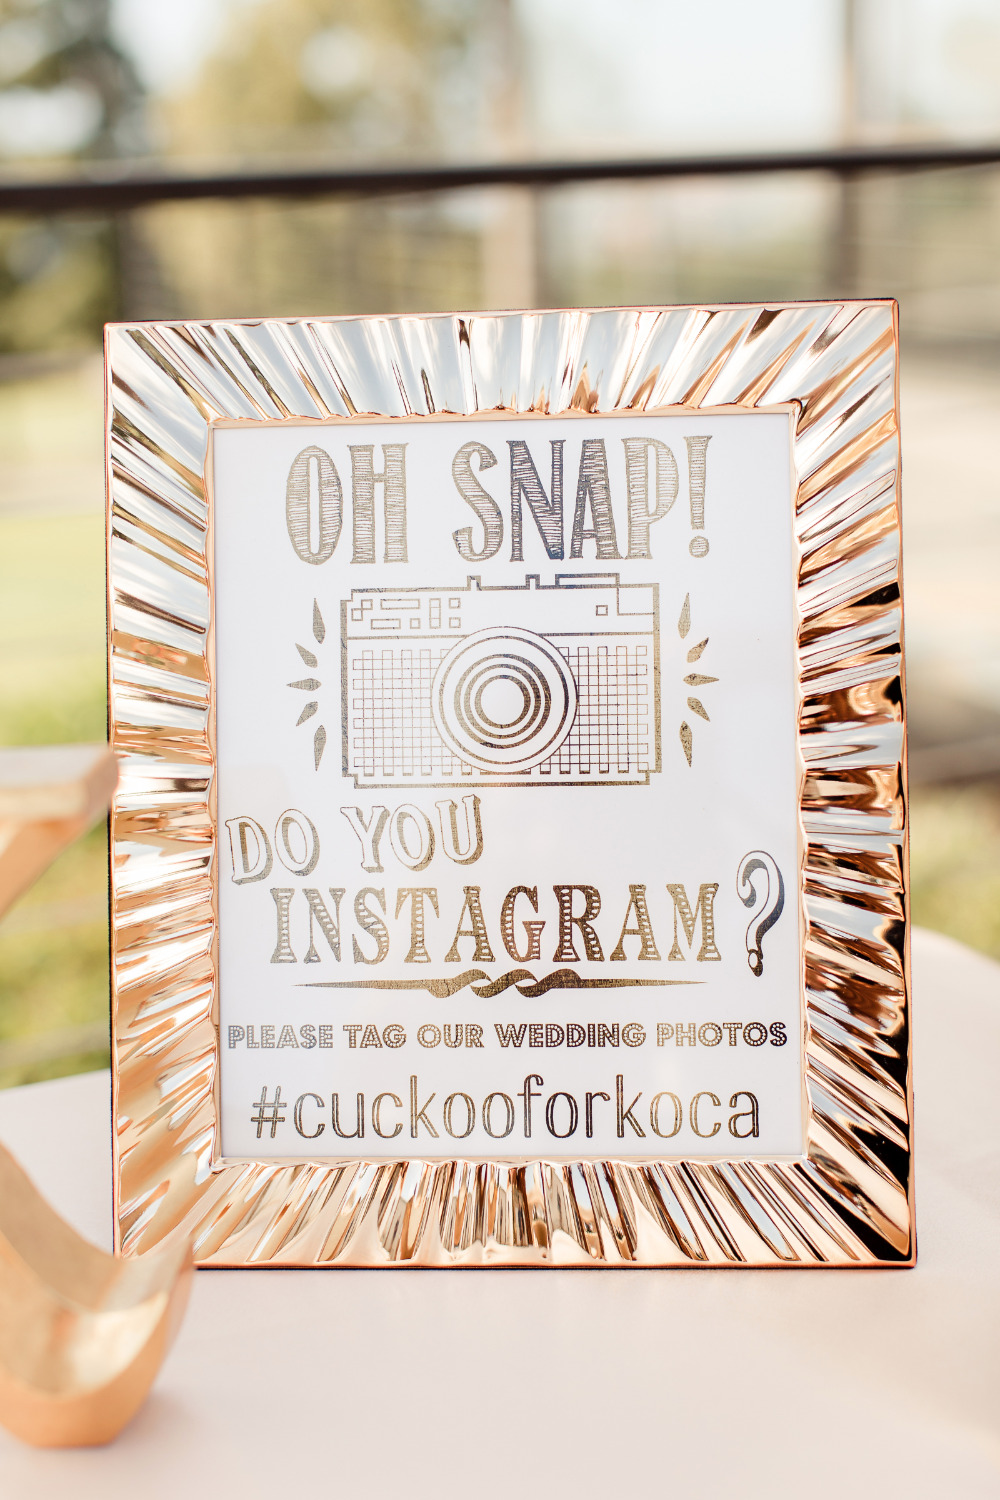 oh snap wedding instagram sign